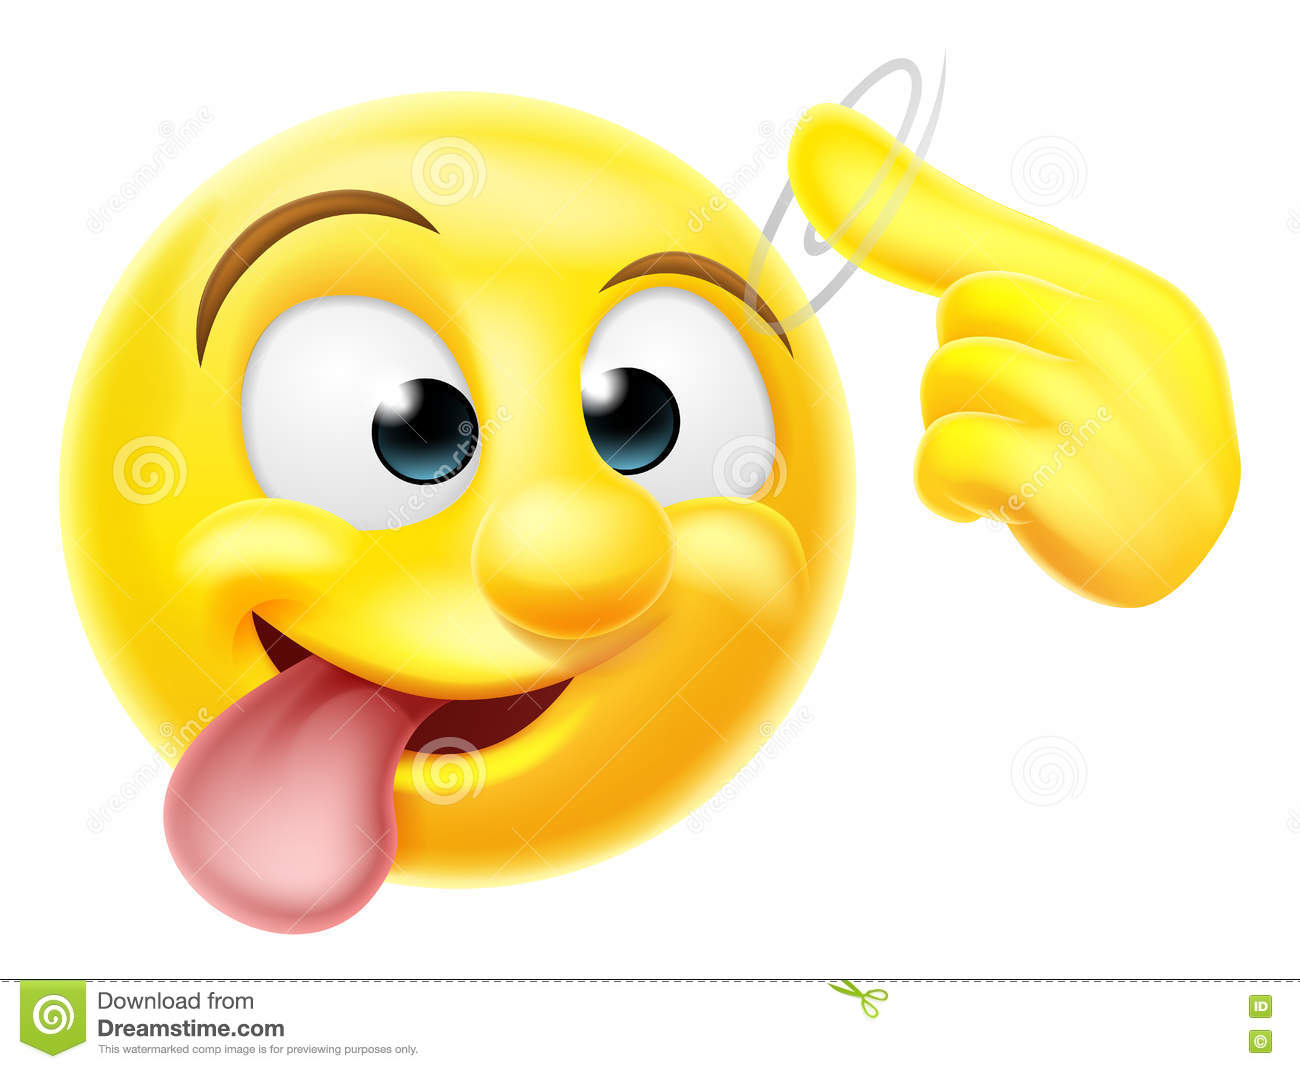 A happy emoji emoticon smiley face character pointing at his or her head making a loose gesture